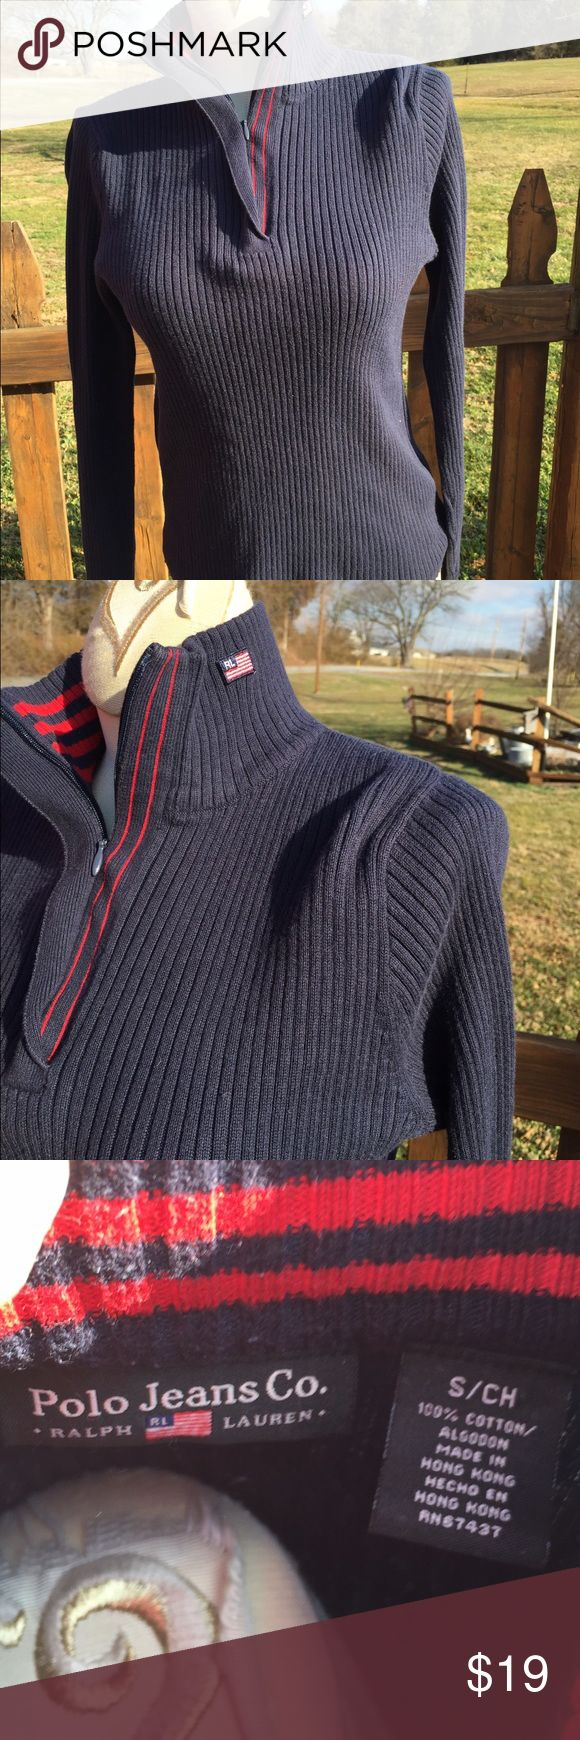 Polo Jeans Co Ralph Lauren Lightweight Sweater Size small. Super gently preowned. Be sure to view the other items in our closet. We offer both women's and Mens items in a variety of sizes. Bundle and save!! Thank you for viewing our item!! Ralph Lauren Sweaters Cowl & Turtlenecks